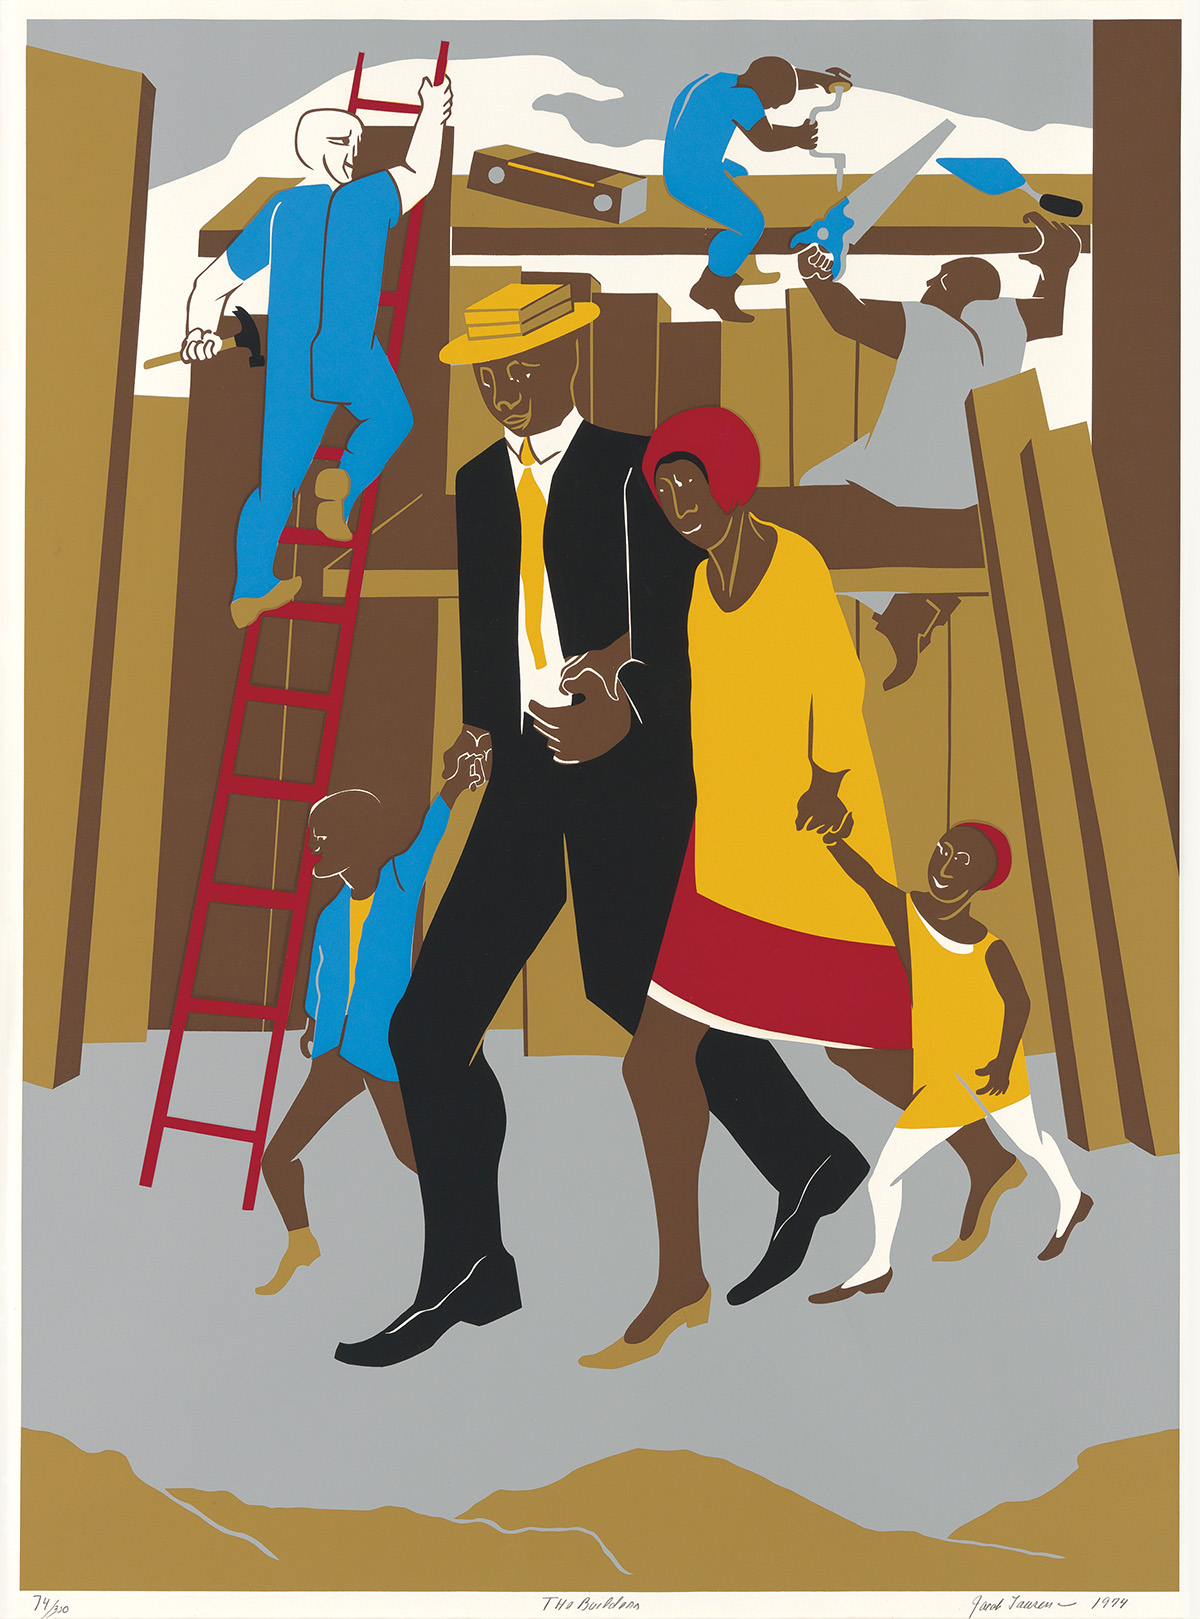 JACOB LAWRENCE (1917 - 2000) The Builders (The Family).